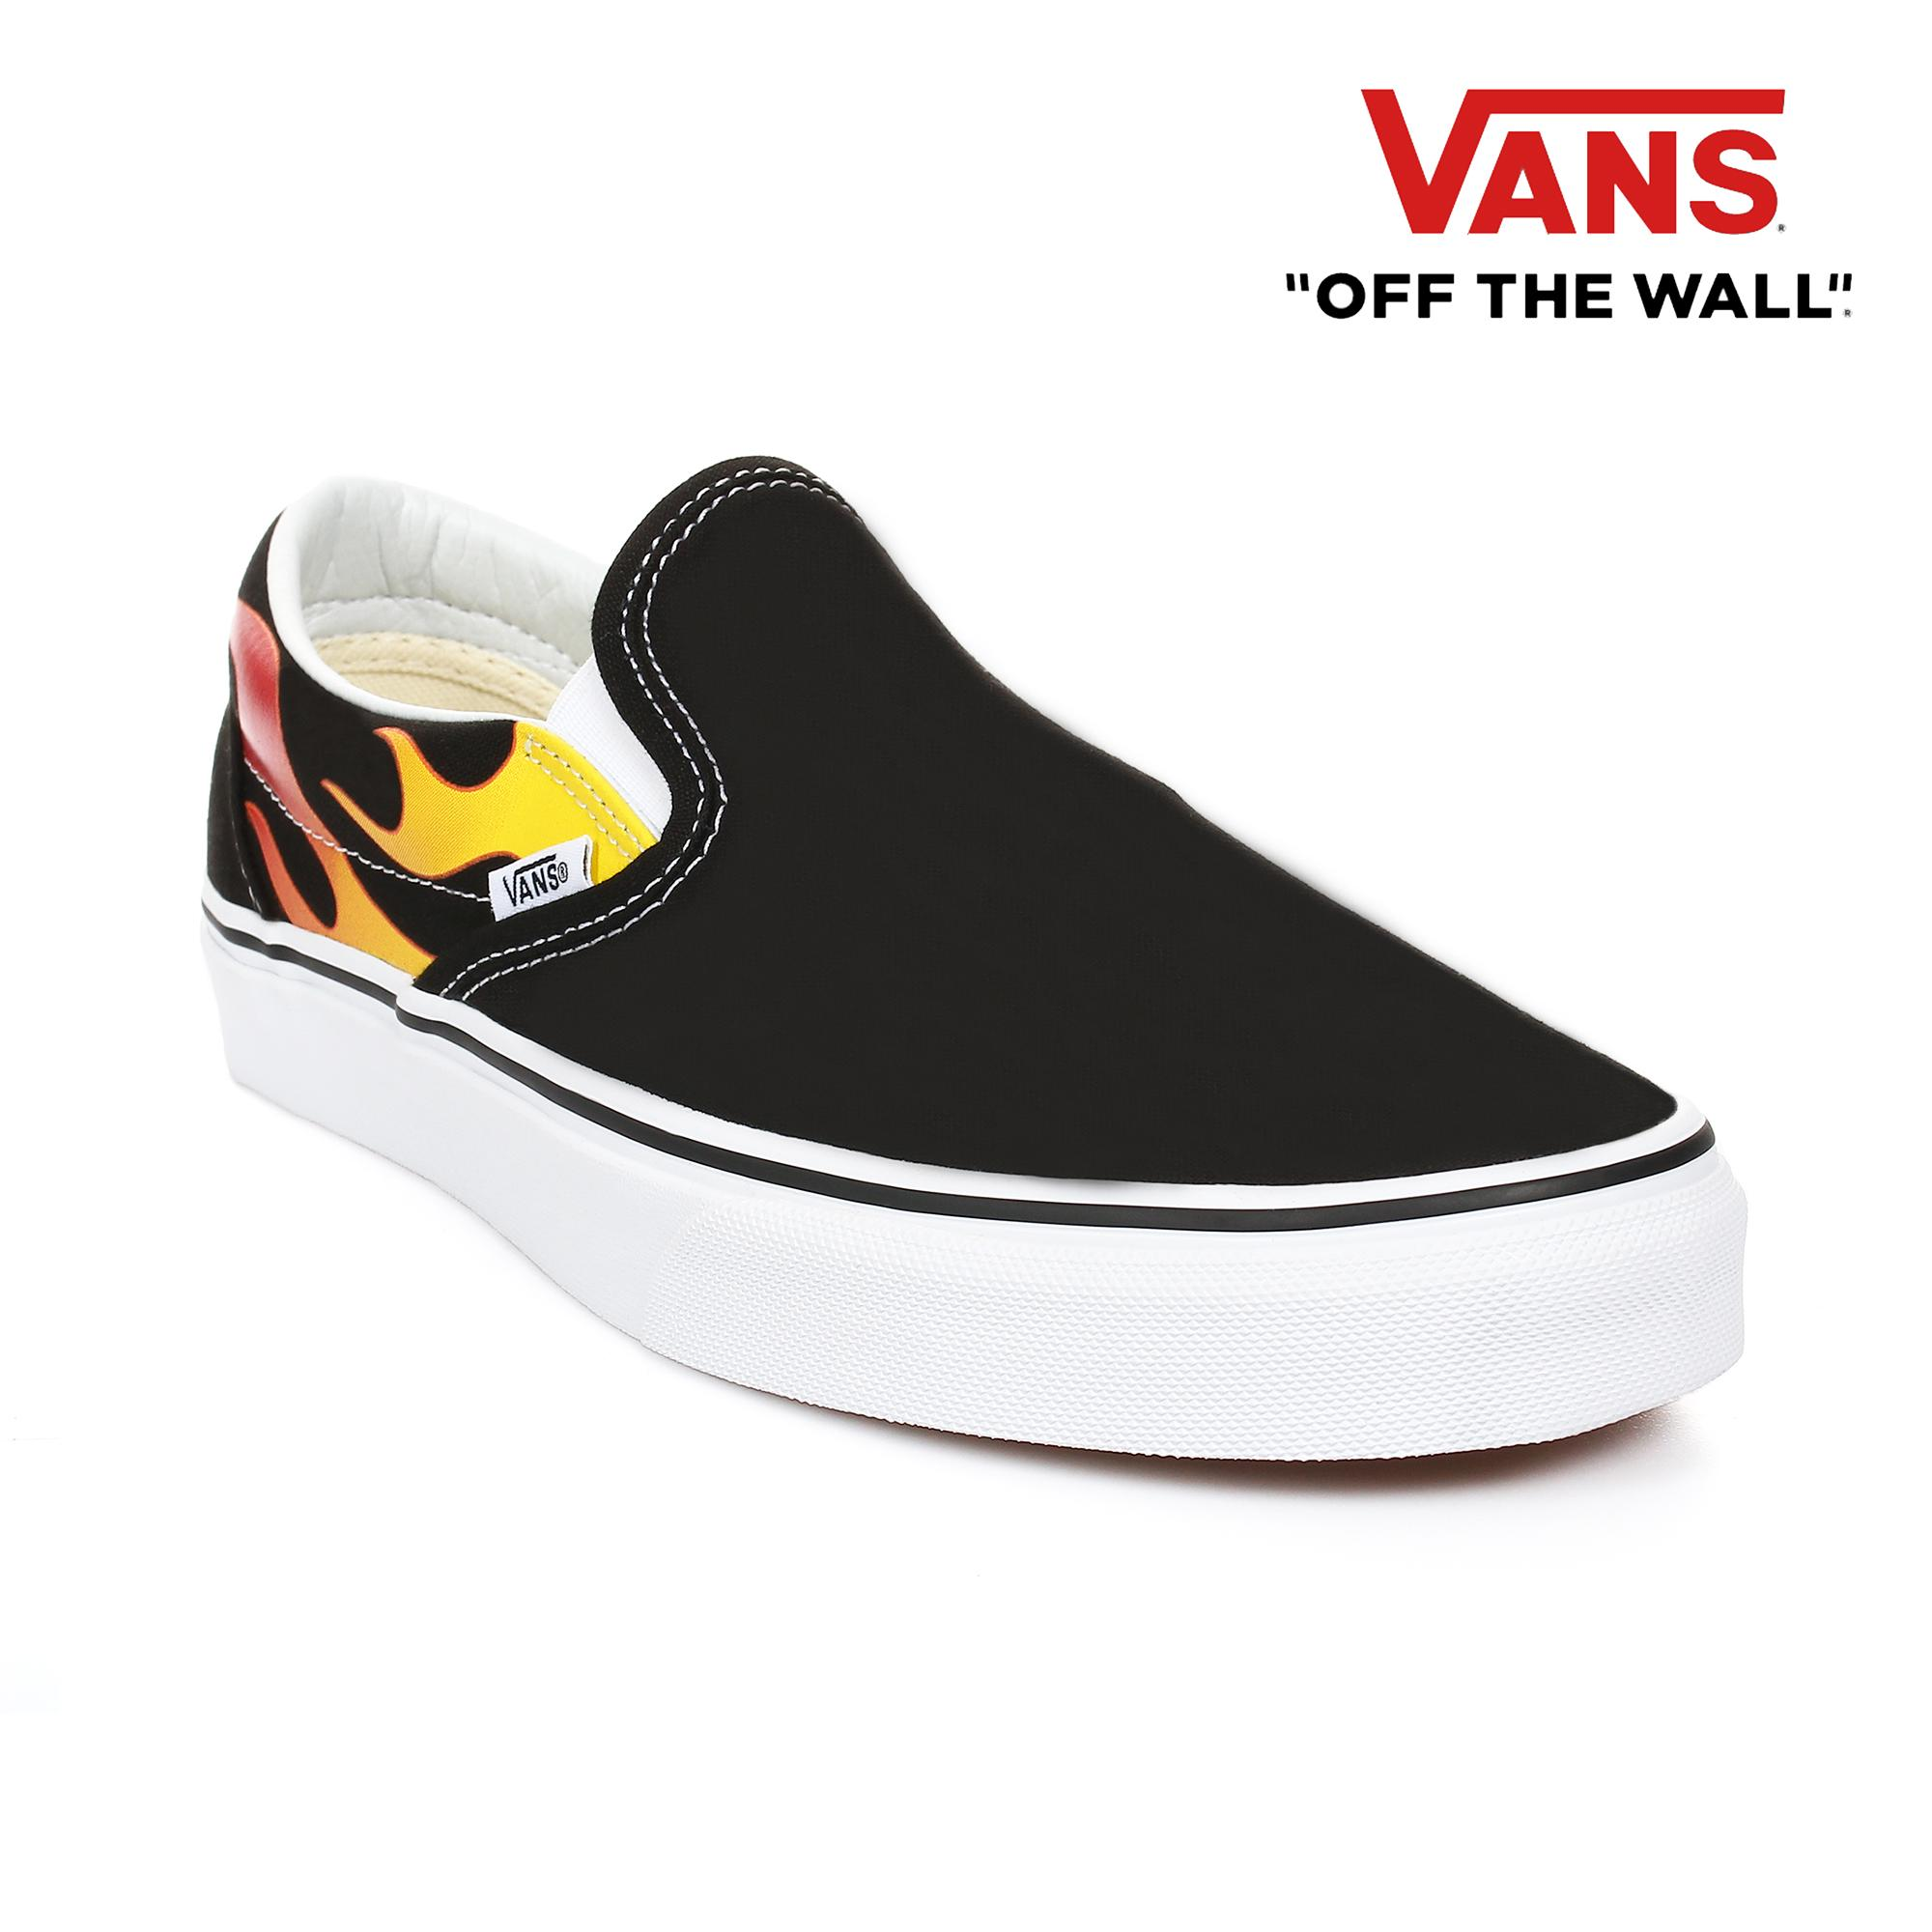 3853e32196021e Vans Shoes for Men Philippines - Vans Men s Shoes for sale - prices ...